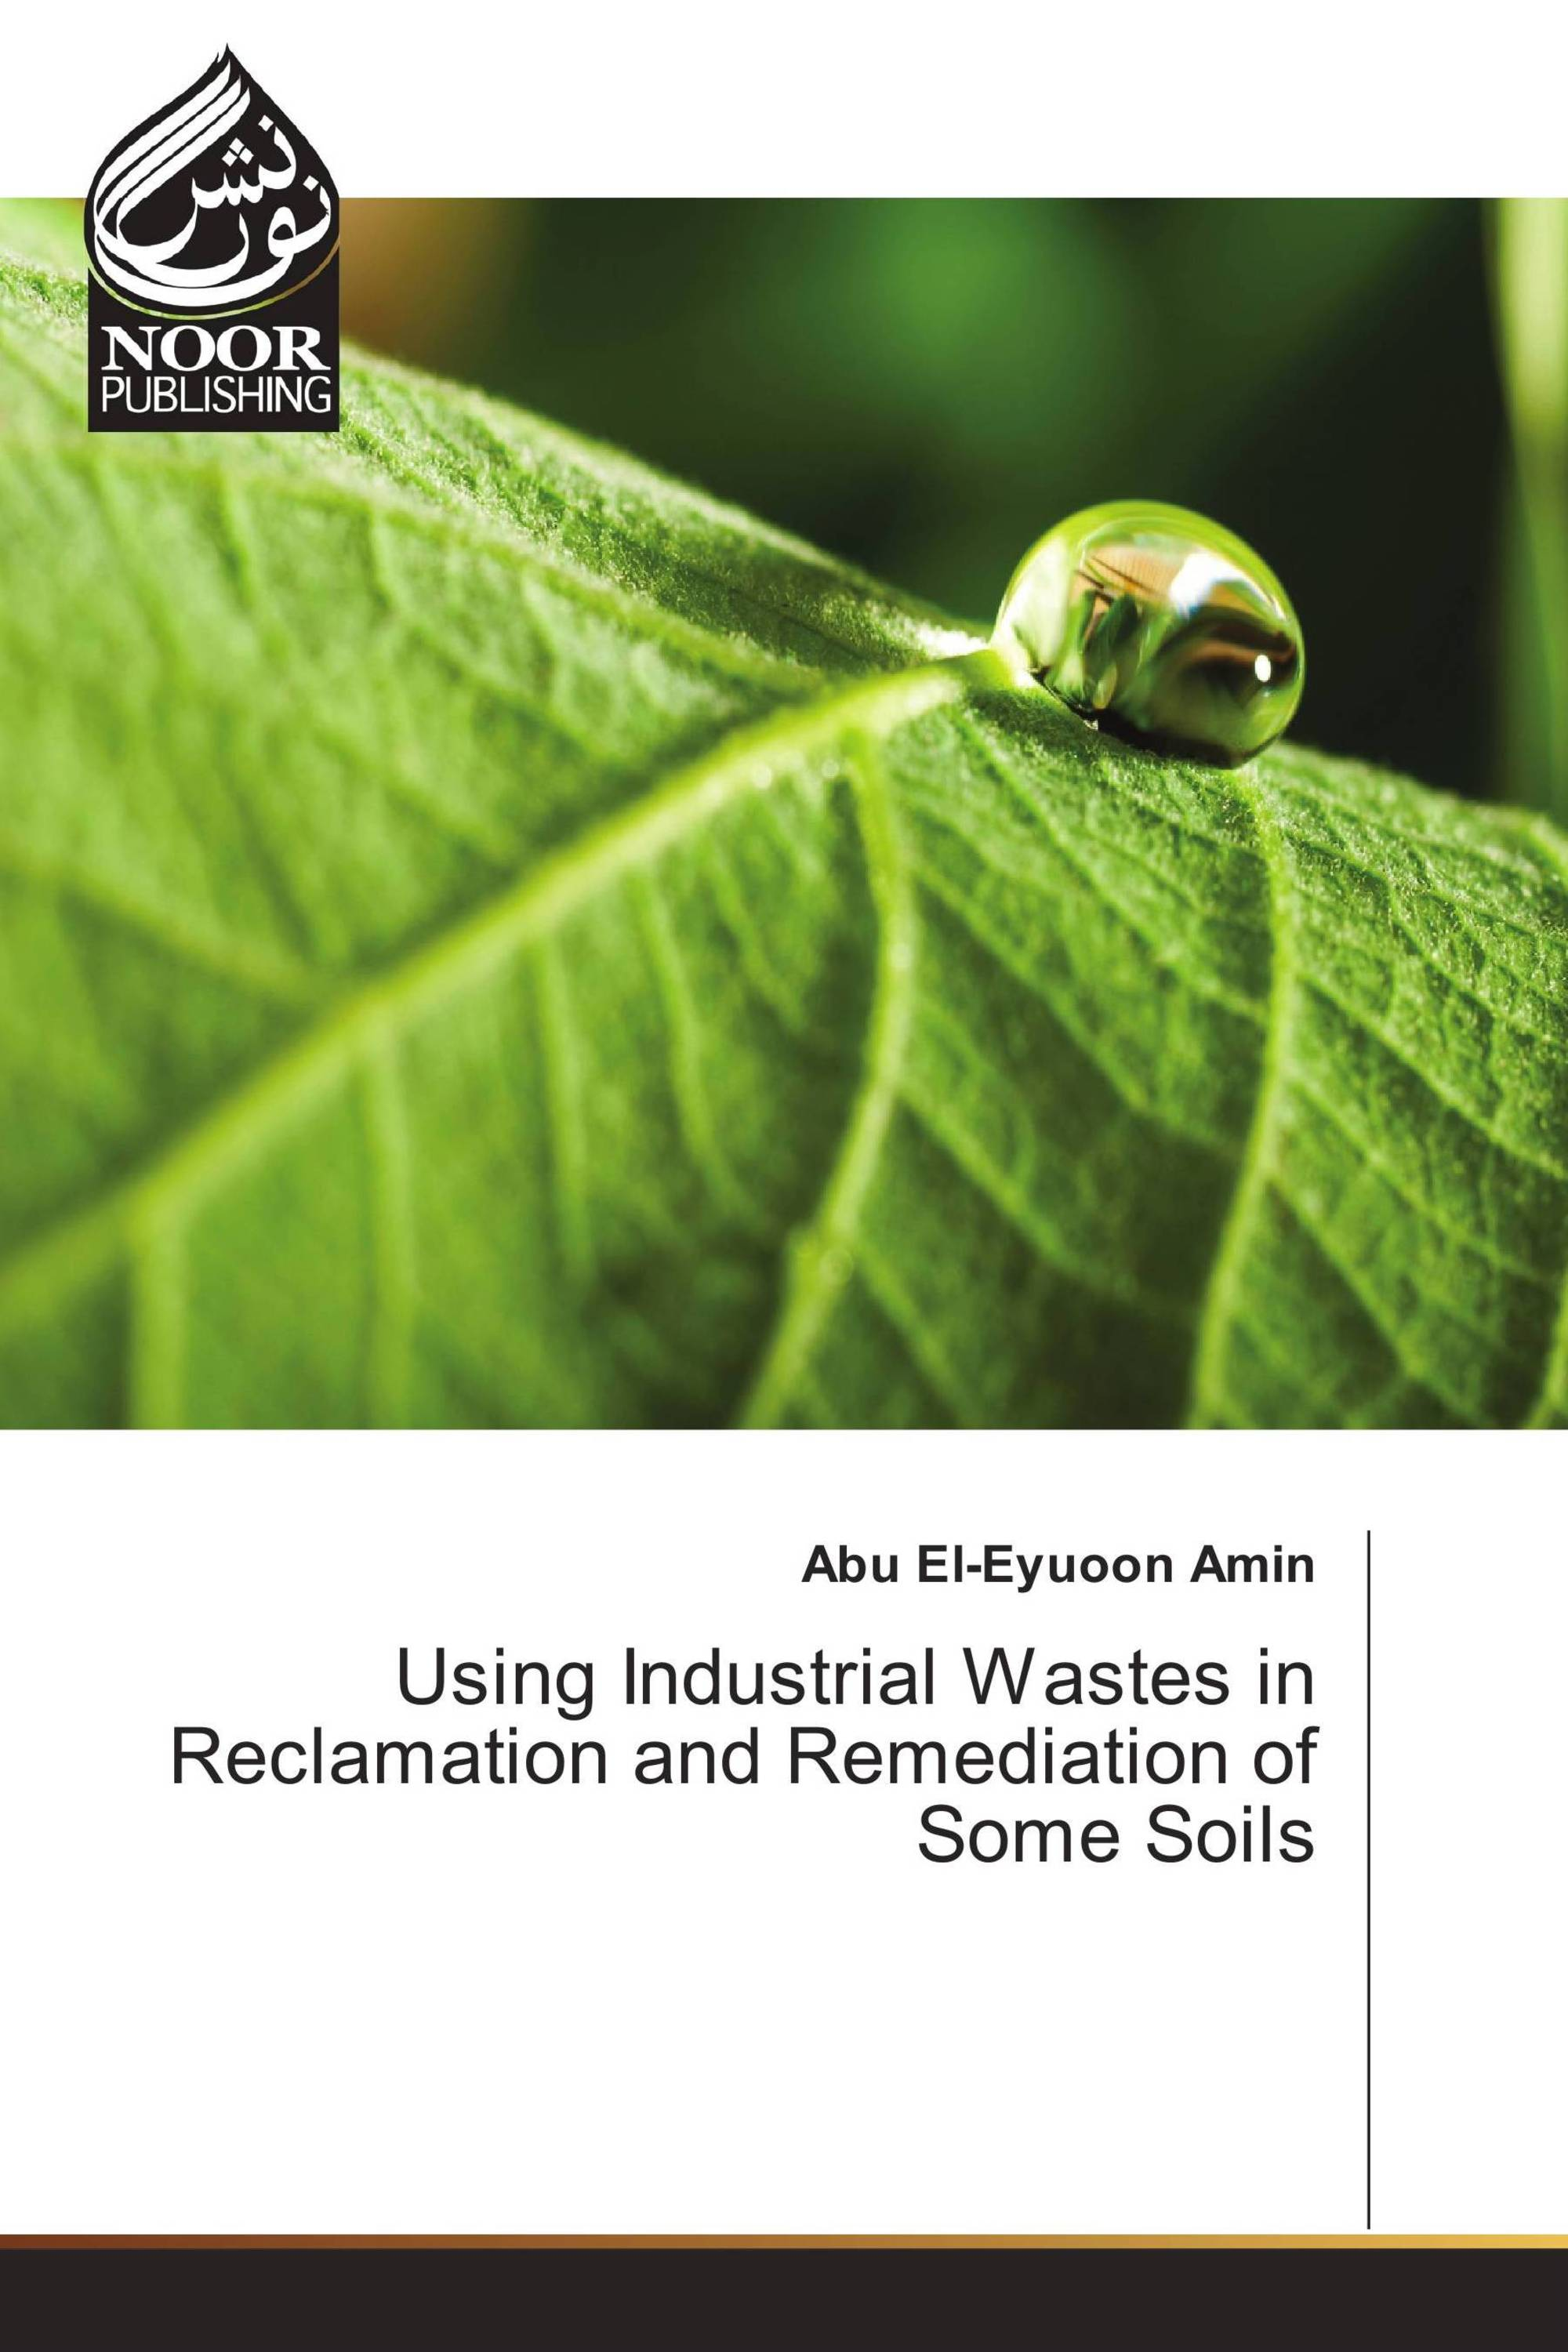 Using Industrial Wastes in Reclamation and Remediation of Some Soils